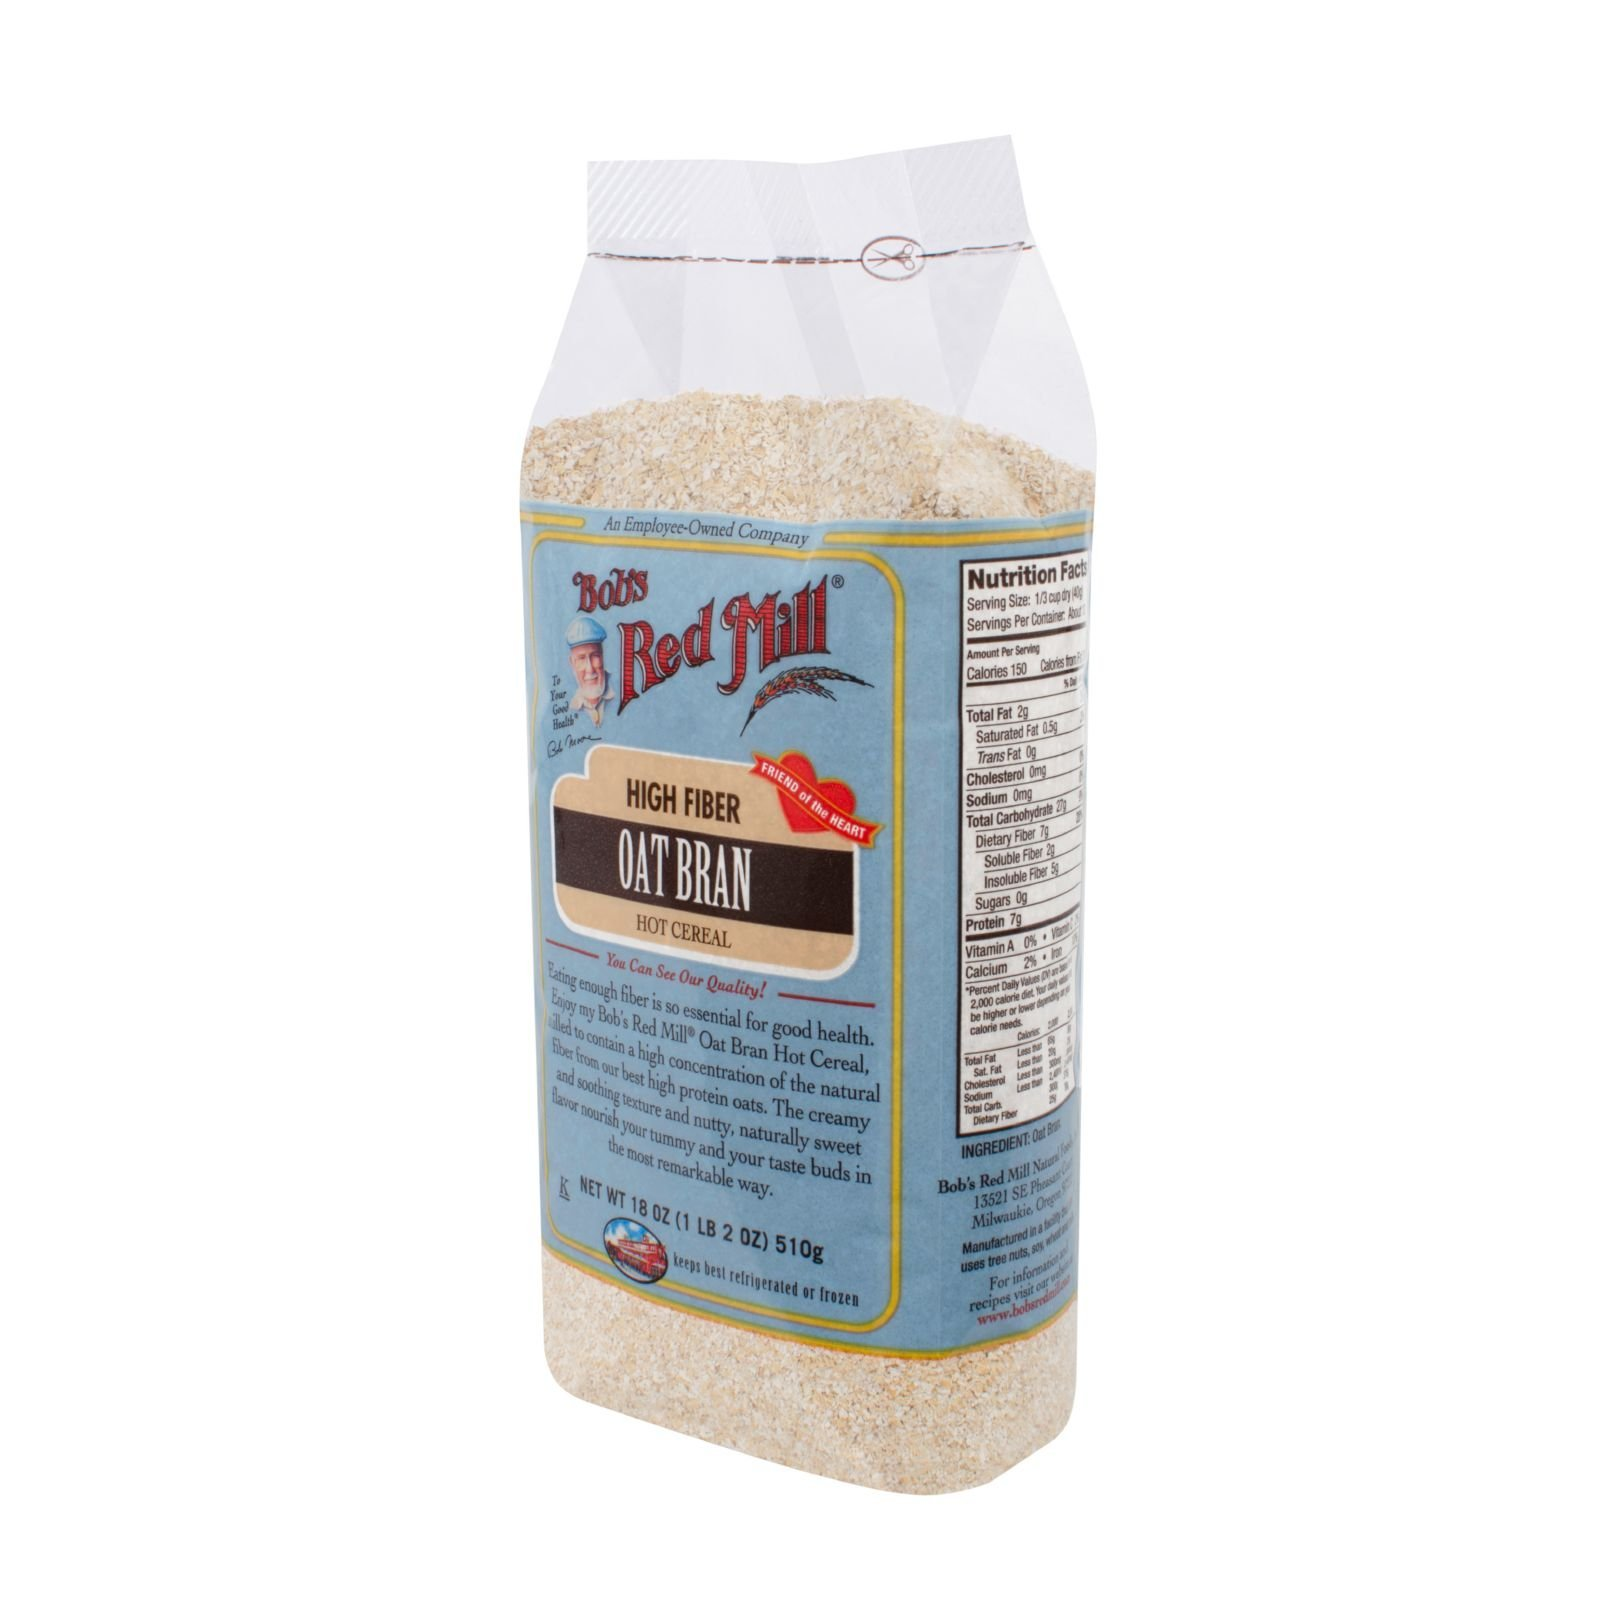 Bobs Red Mill Oat Bran Hot Cereal - 18 oz - Case of 4 - High Fiber - Friend of the Heart